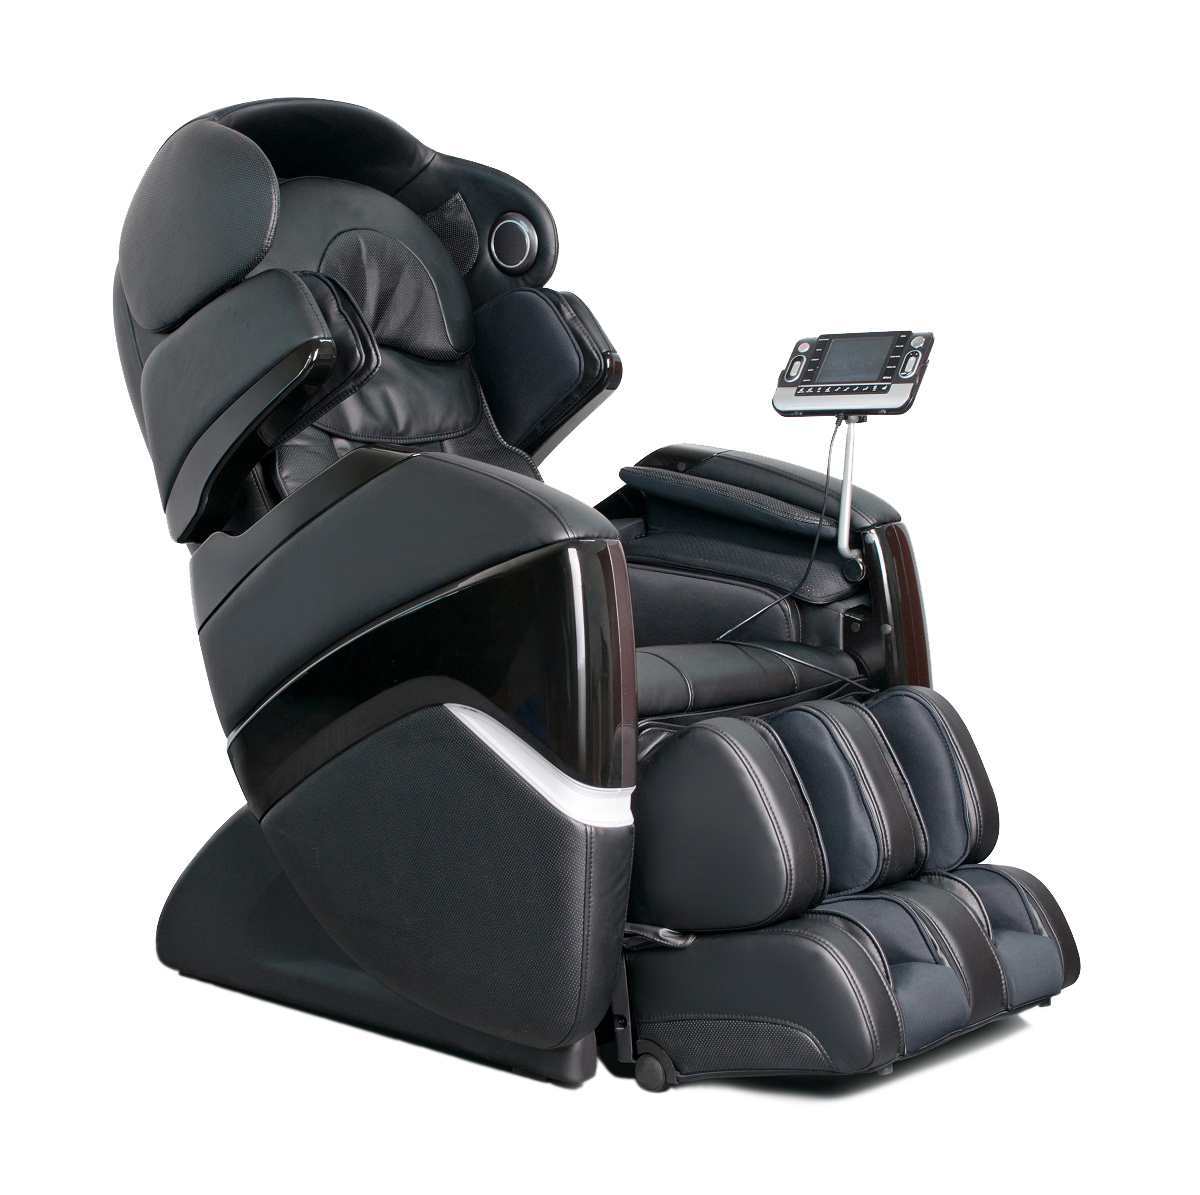 Superior Osaki OS 3D Pro Cyber Zero Gravity Massage Chair Recliner Black